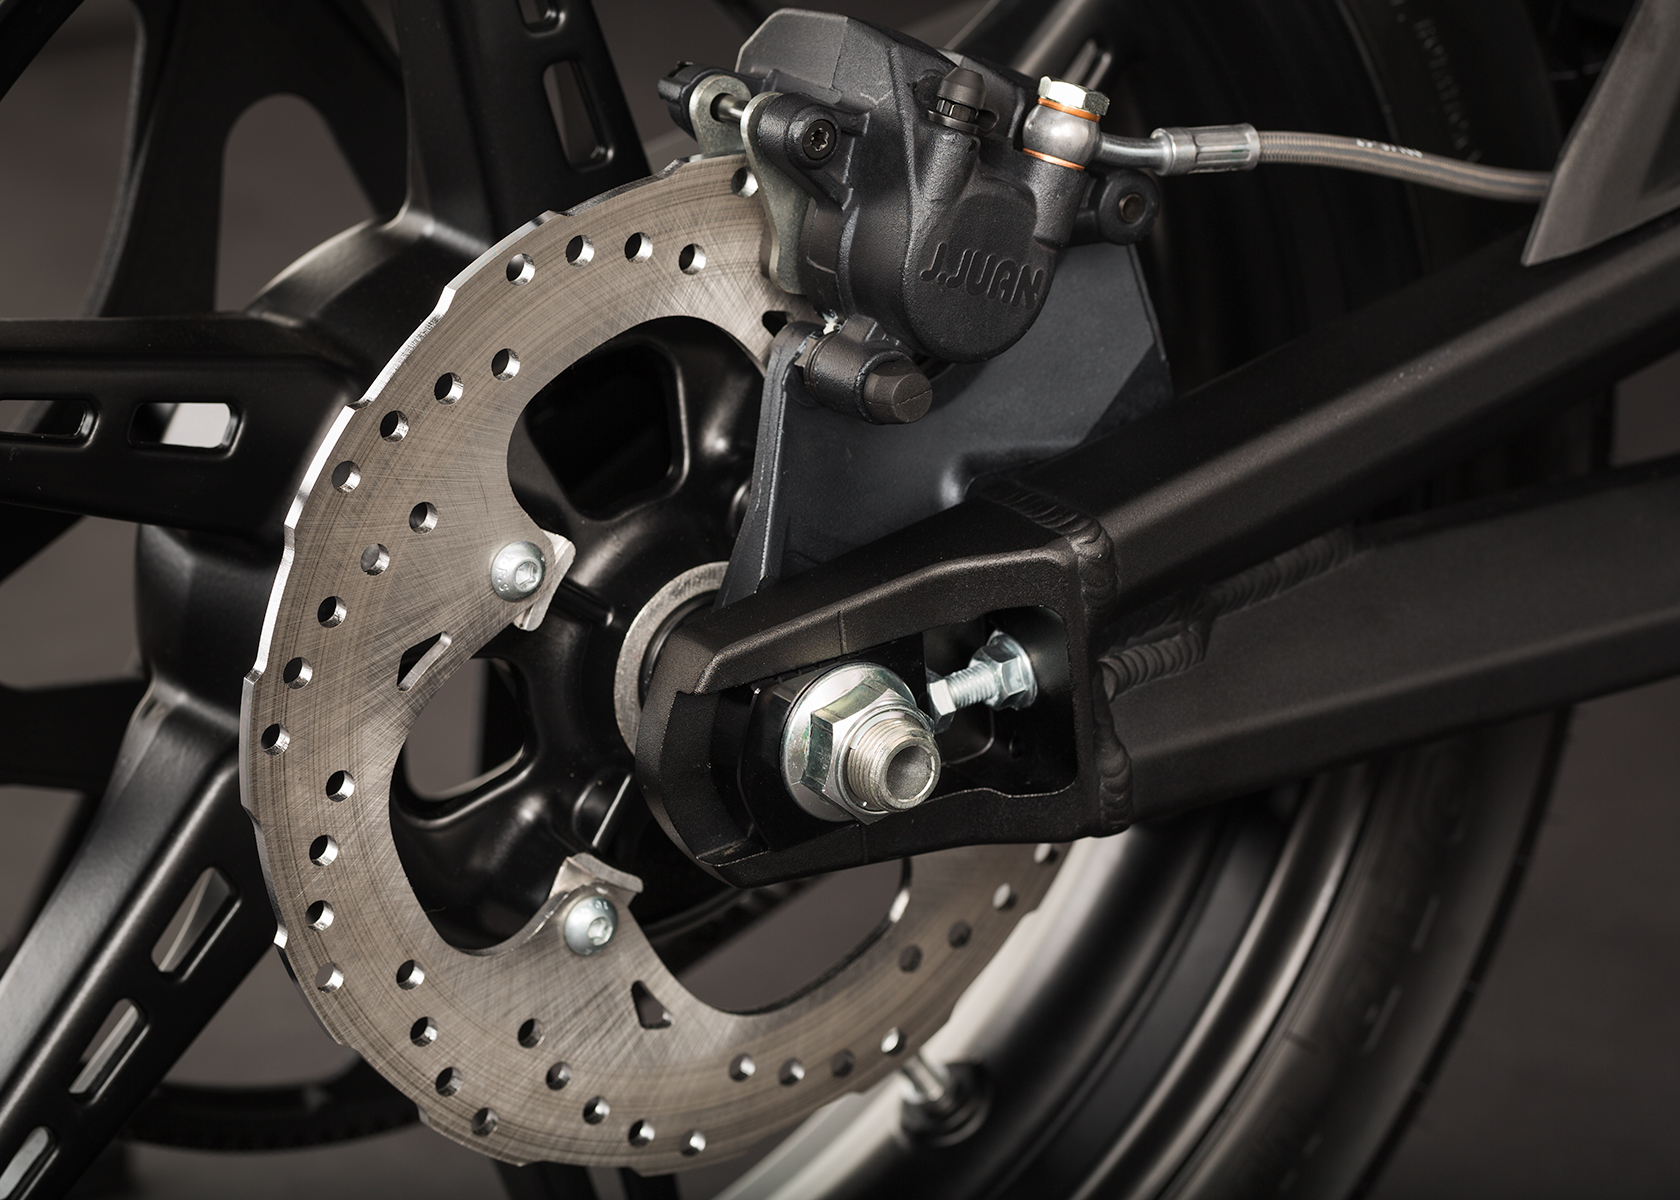 2014 Zero S Electric Motorcycle: Rear Brake